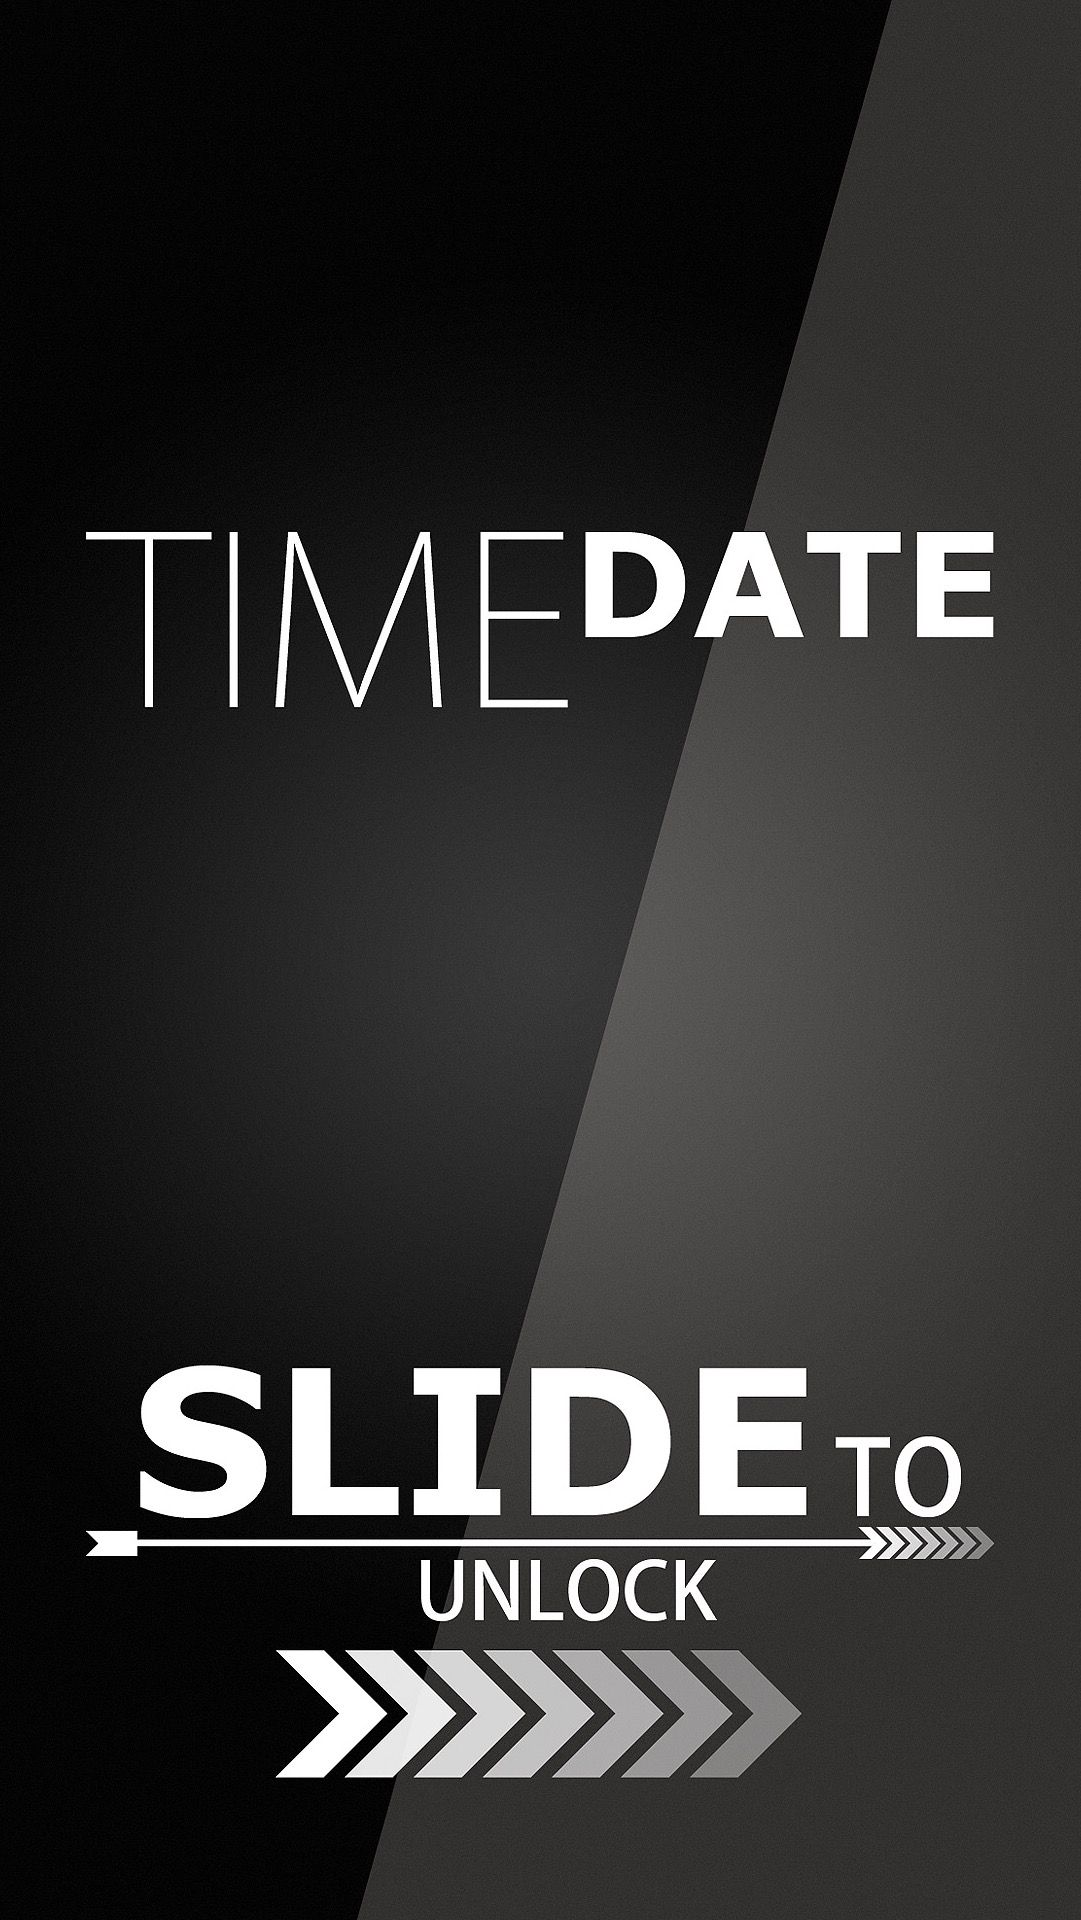 date and time wallpaper  ↑↑TAP AND GET THE FREE APP! Lockscreens Time Date Slide To Unlock ...